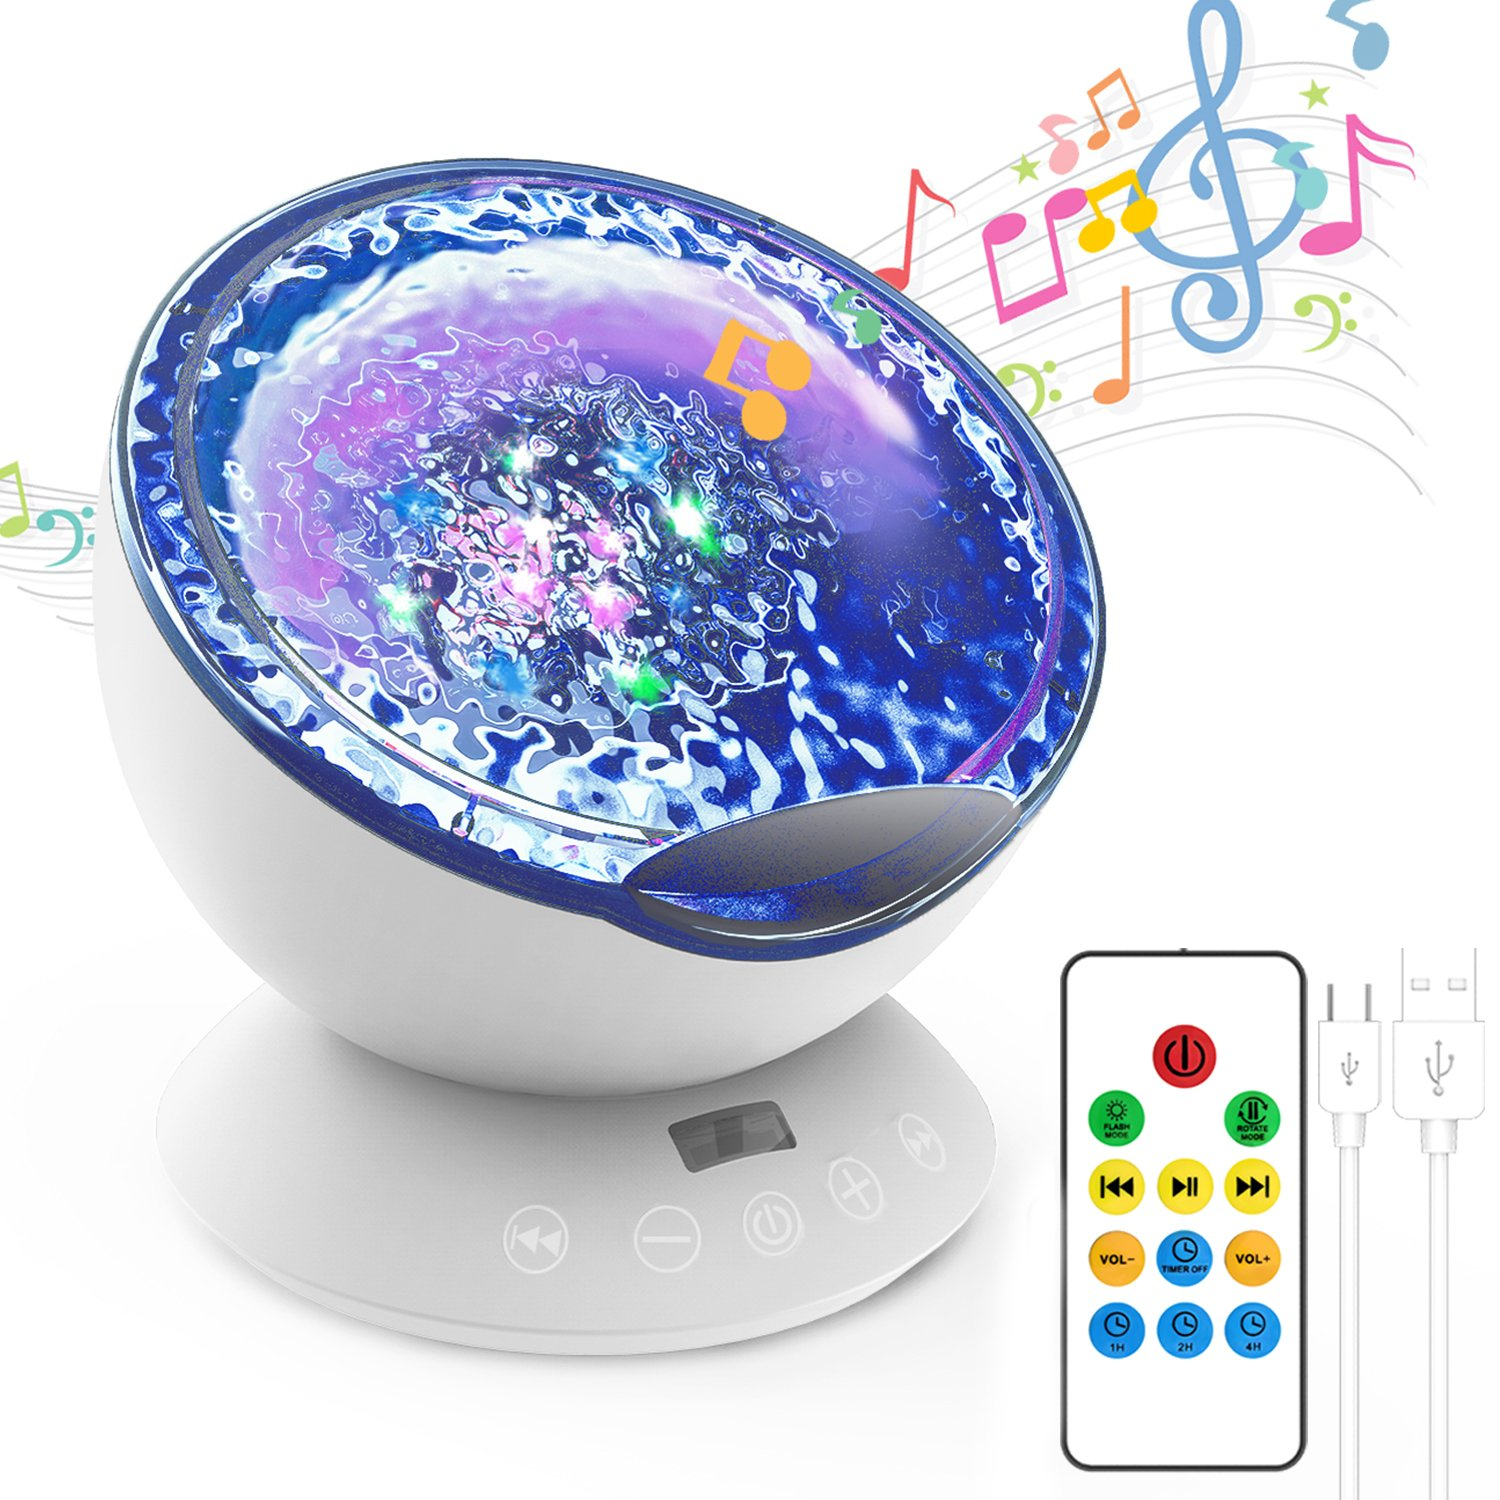 Kids Night Light Projector Ocean Wave,Remote Control Lamp Built-in Mini Music Player with 12 LED & 8 Modes& 45°Angle Nightlight Mood Sleeping Light for Baby Nursery Bedroom Living Room (Black) WHATOOK